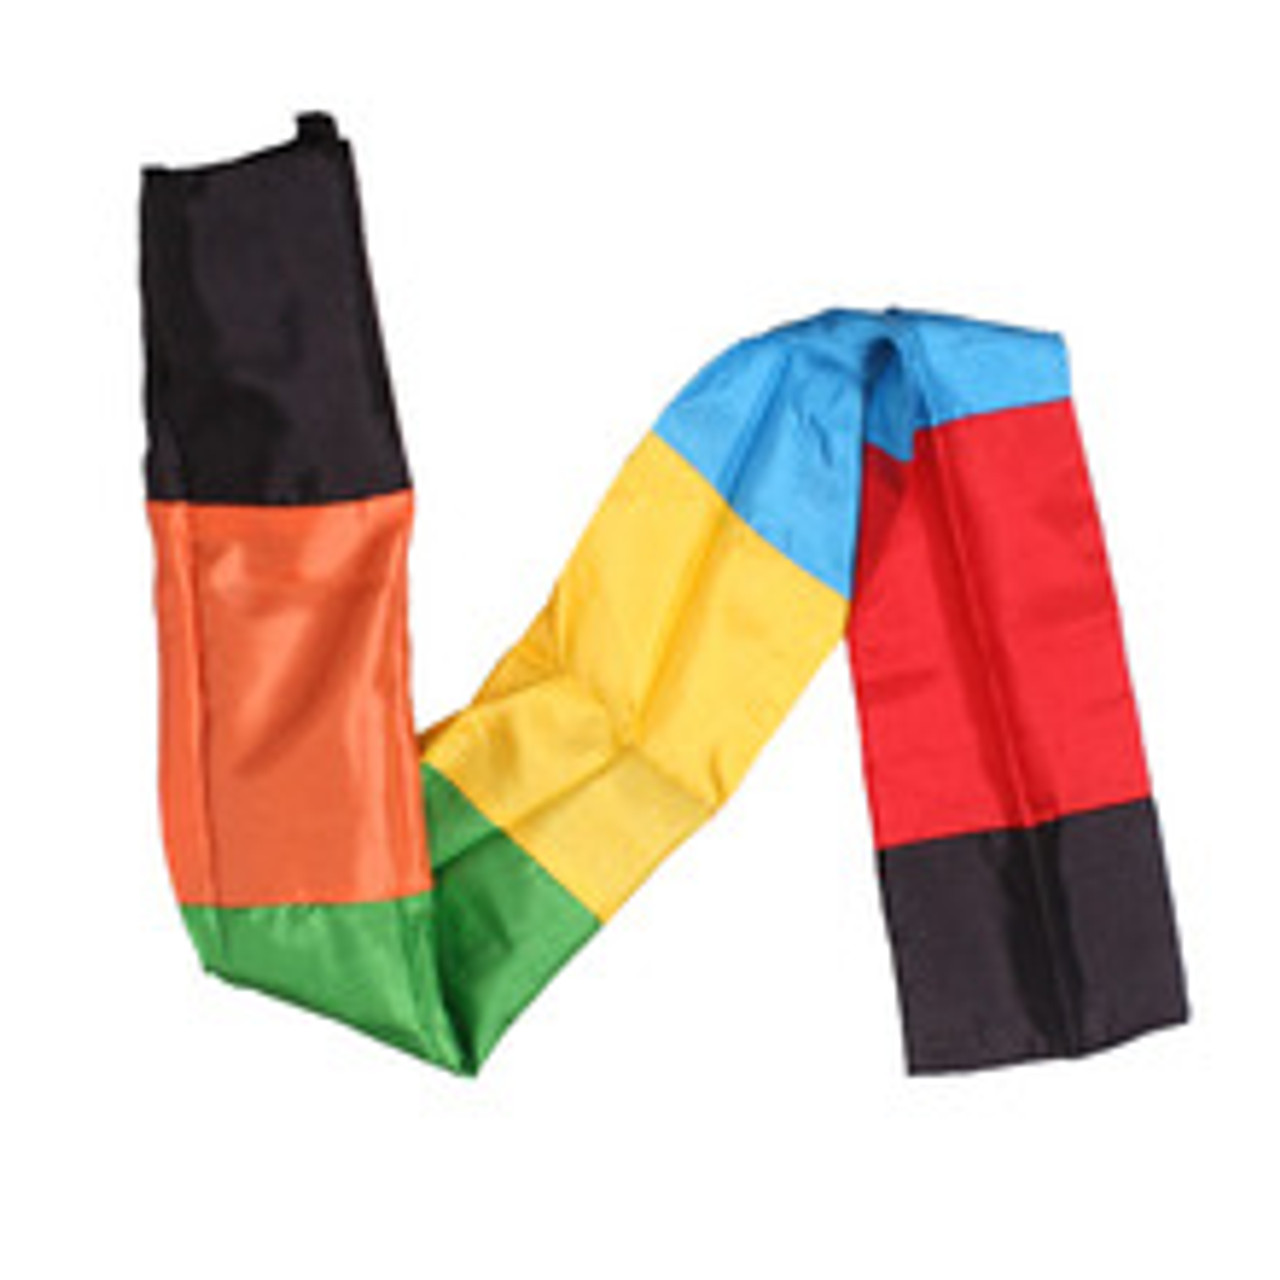 NEW - Colour Changing Scarf - Value - Black Scarf Becomes a Rainbow of Colours - God Keeps His Promises